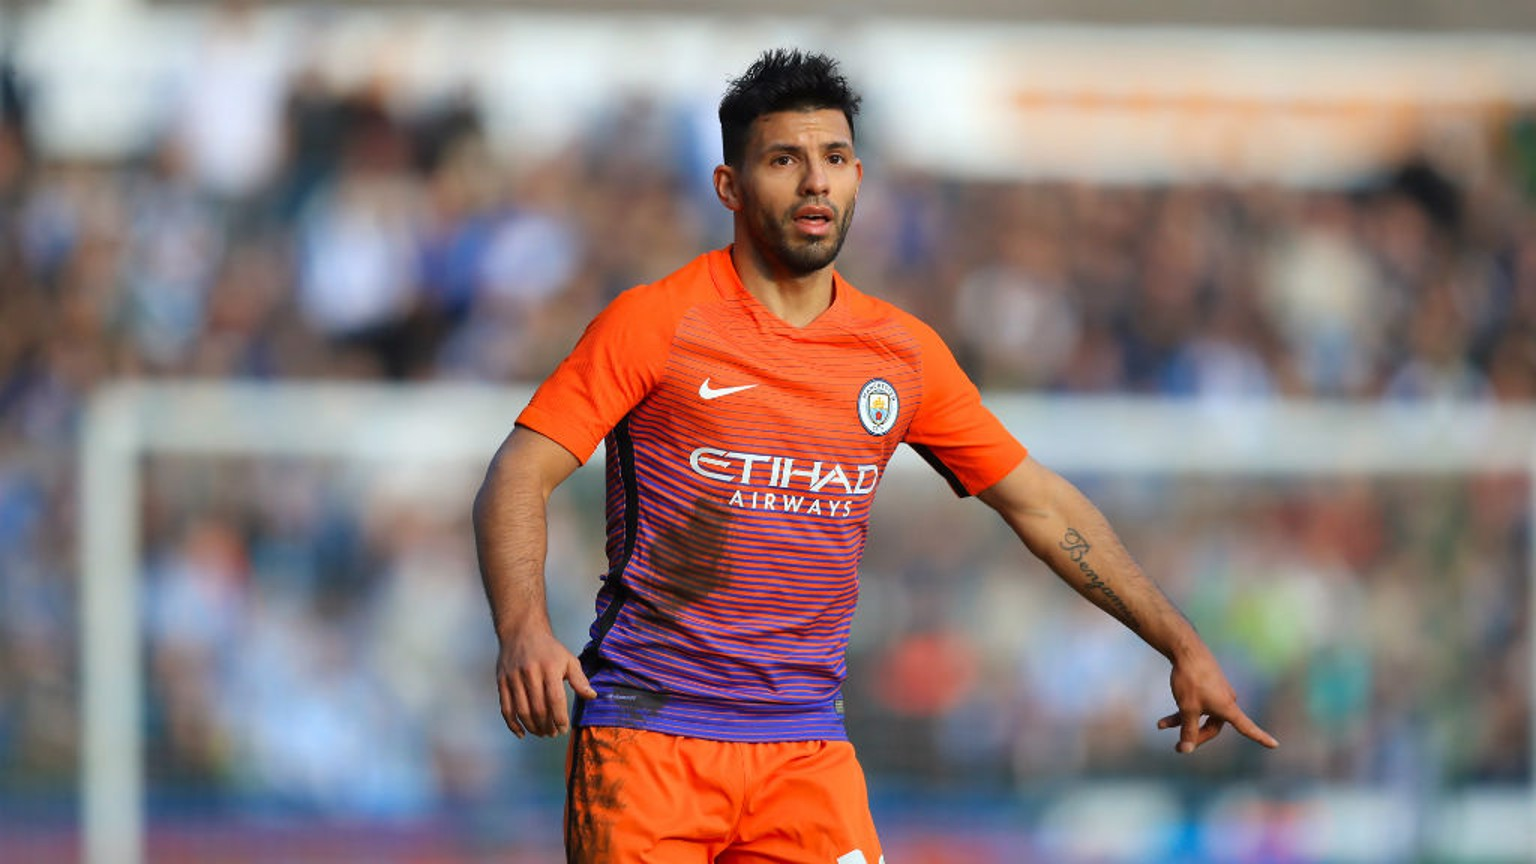 GLORIOUS ORANGE: Aguero tells a teammate exactly where he wants the ball